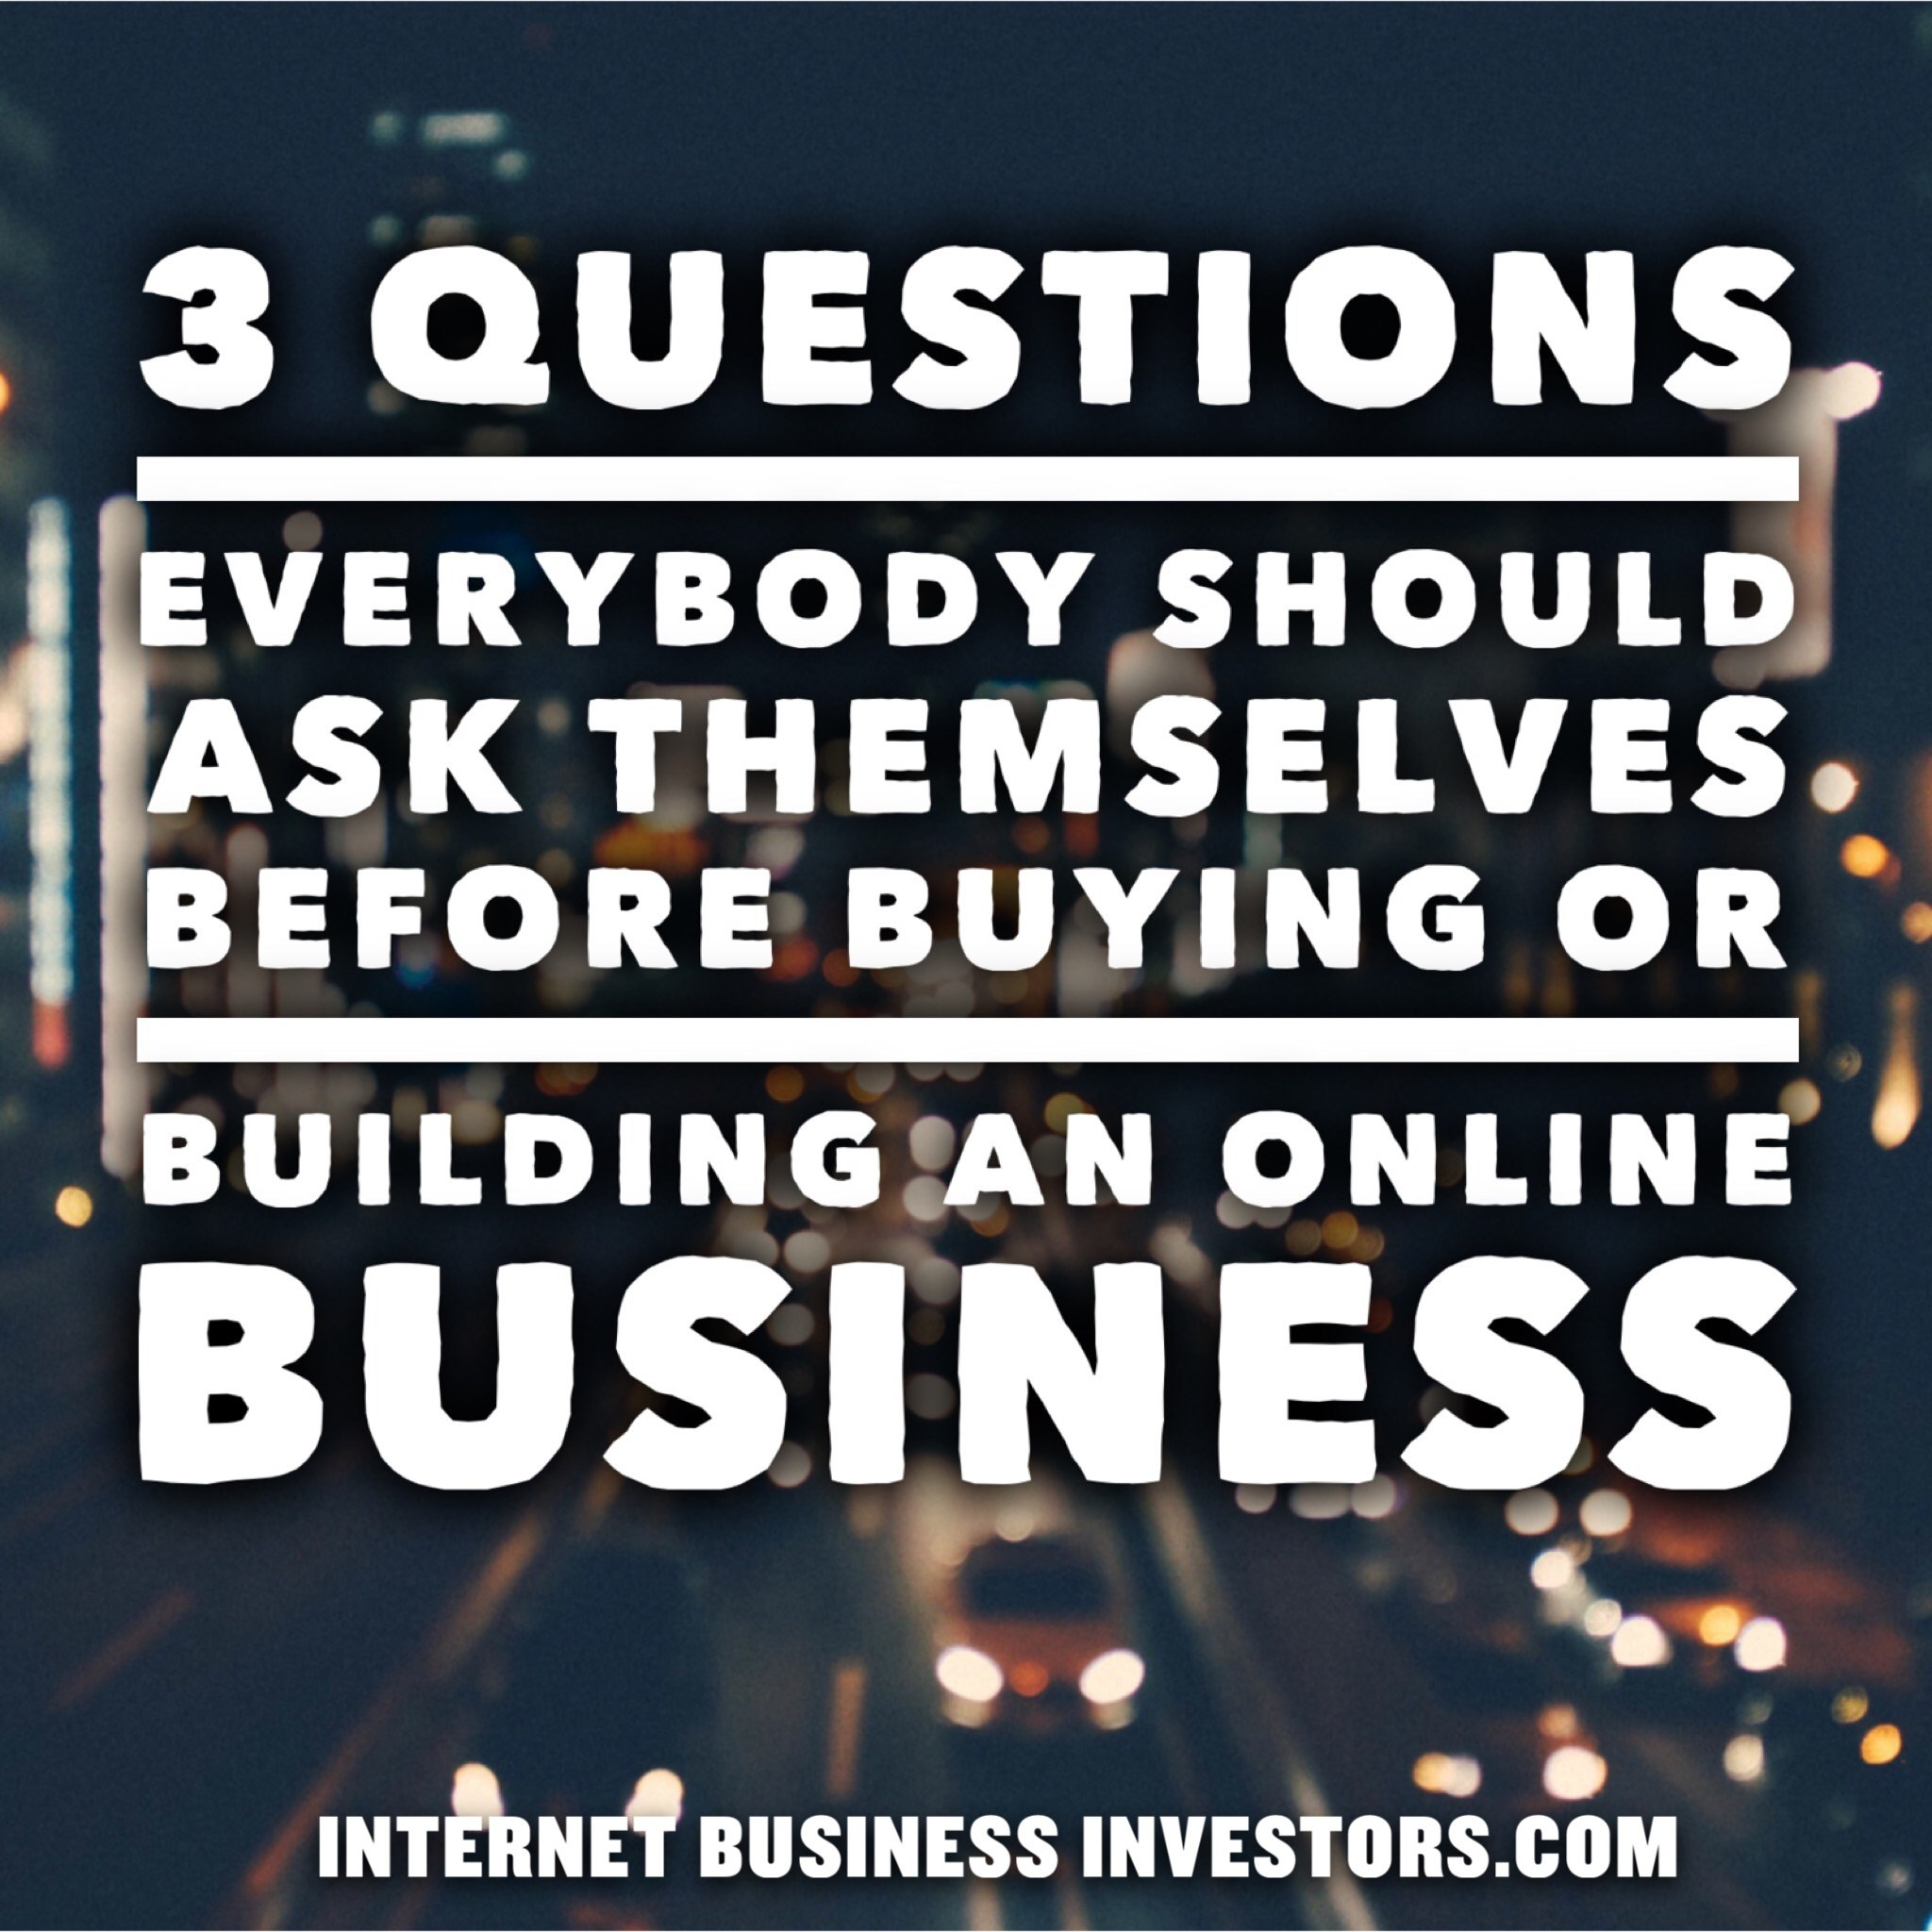 3 Questions Every Webmaster Should Ask Themselves